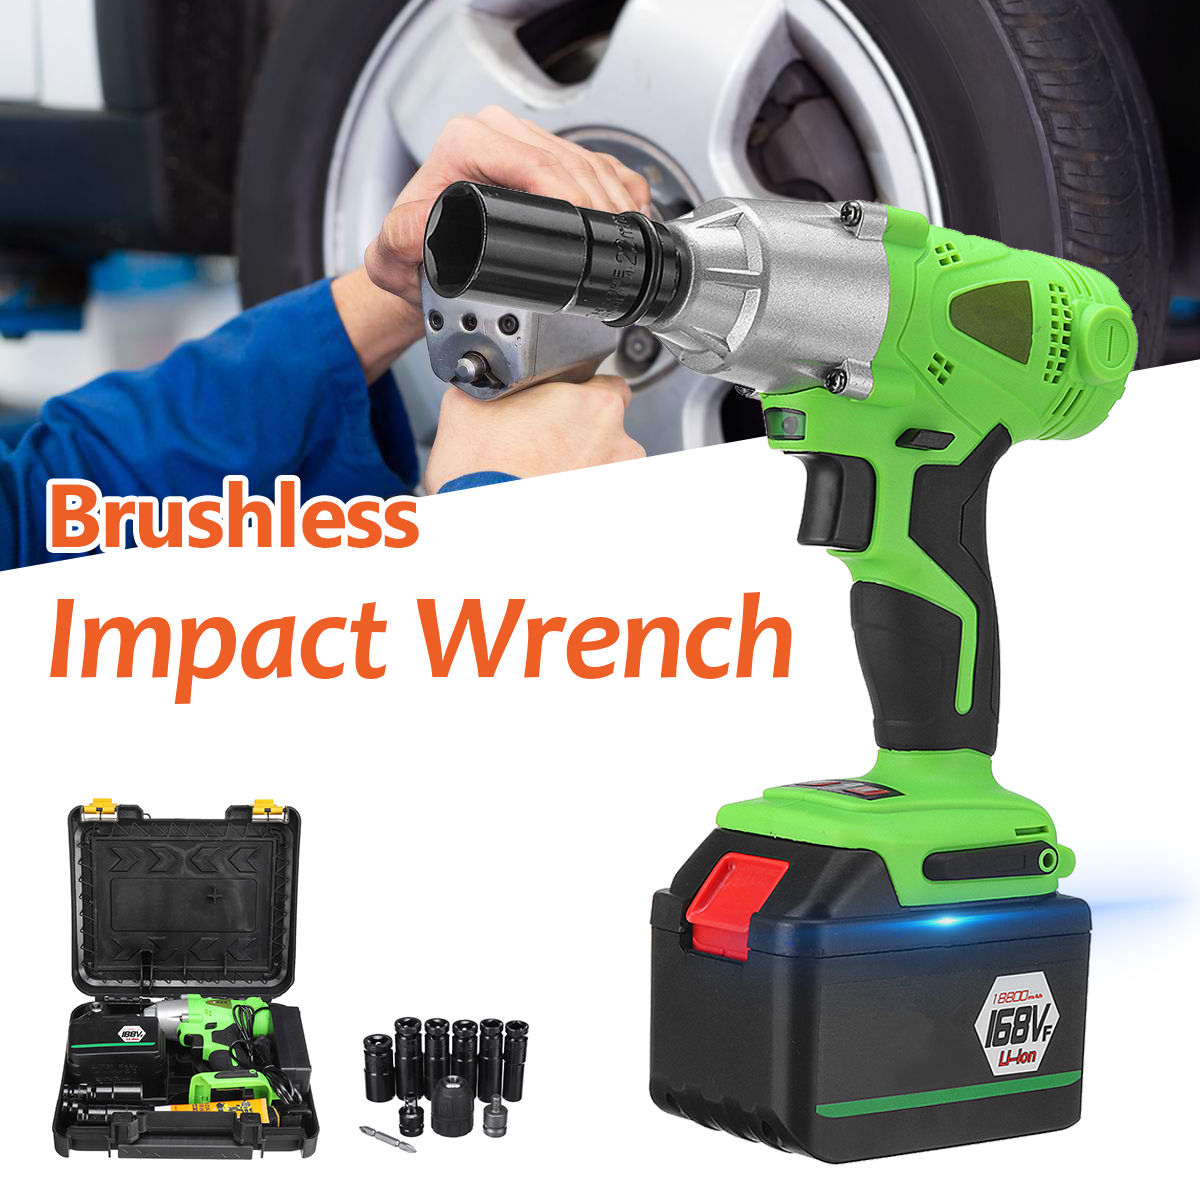 98-188VF Electric Brushless Cordless Impact Wrench Drill 2500RPM Screwdriver With Socket Set for Drill Installation Power Tool electric impact wrench 98 128 168 188vf electric brushless li ion battery wrench 10mm chuk with box cordless speed control power